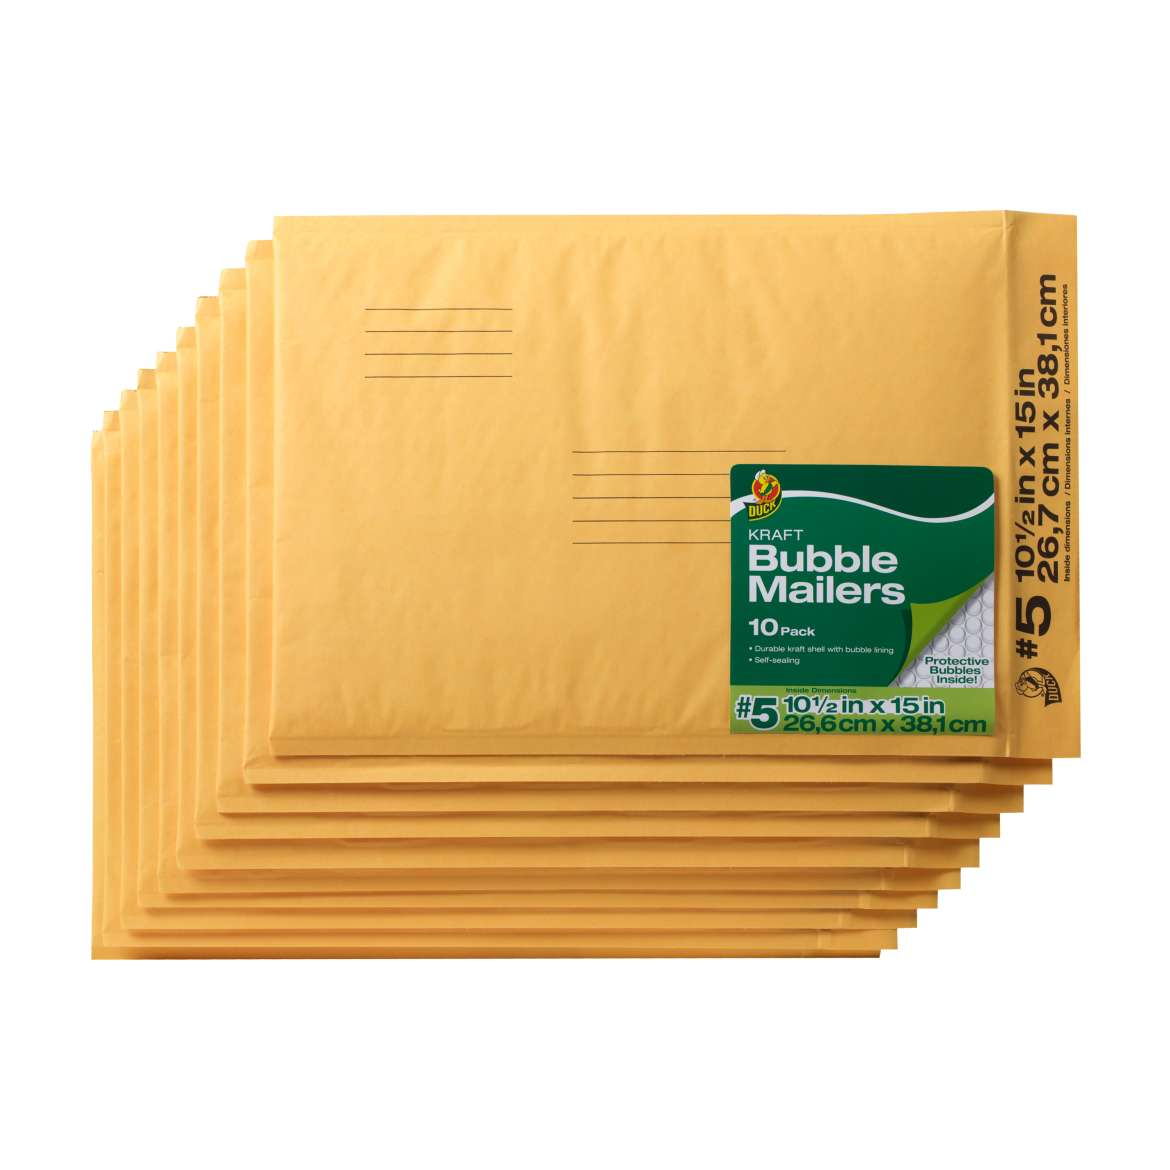 Duck® Brand Kraft Bubble Mailers - Manila, 10 pk, 10.5 in. x 15 in. Image